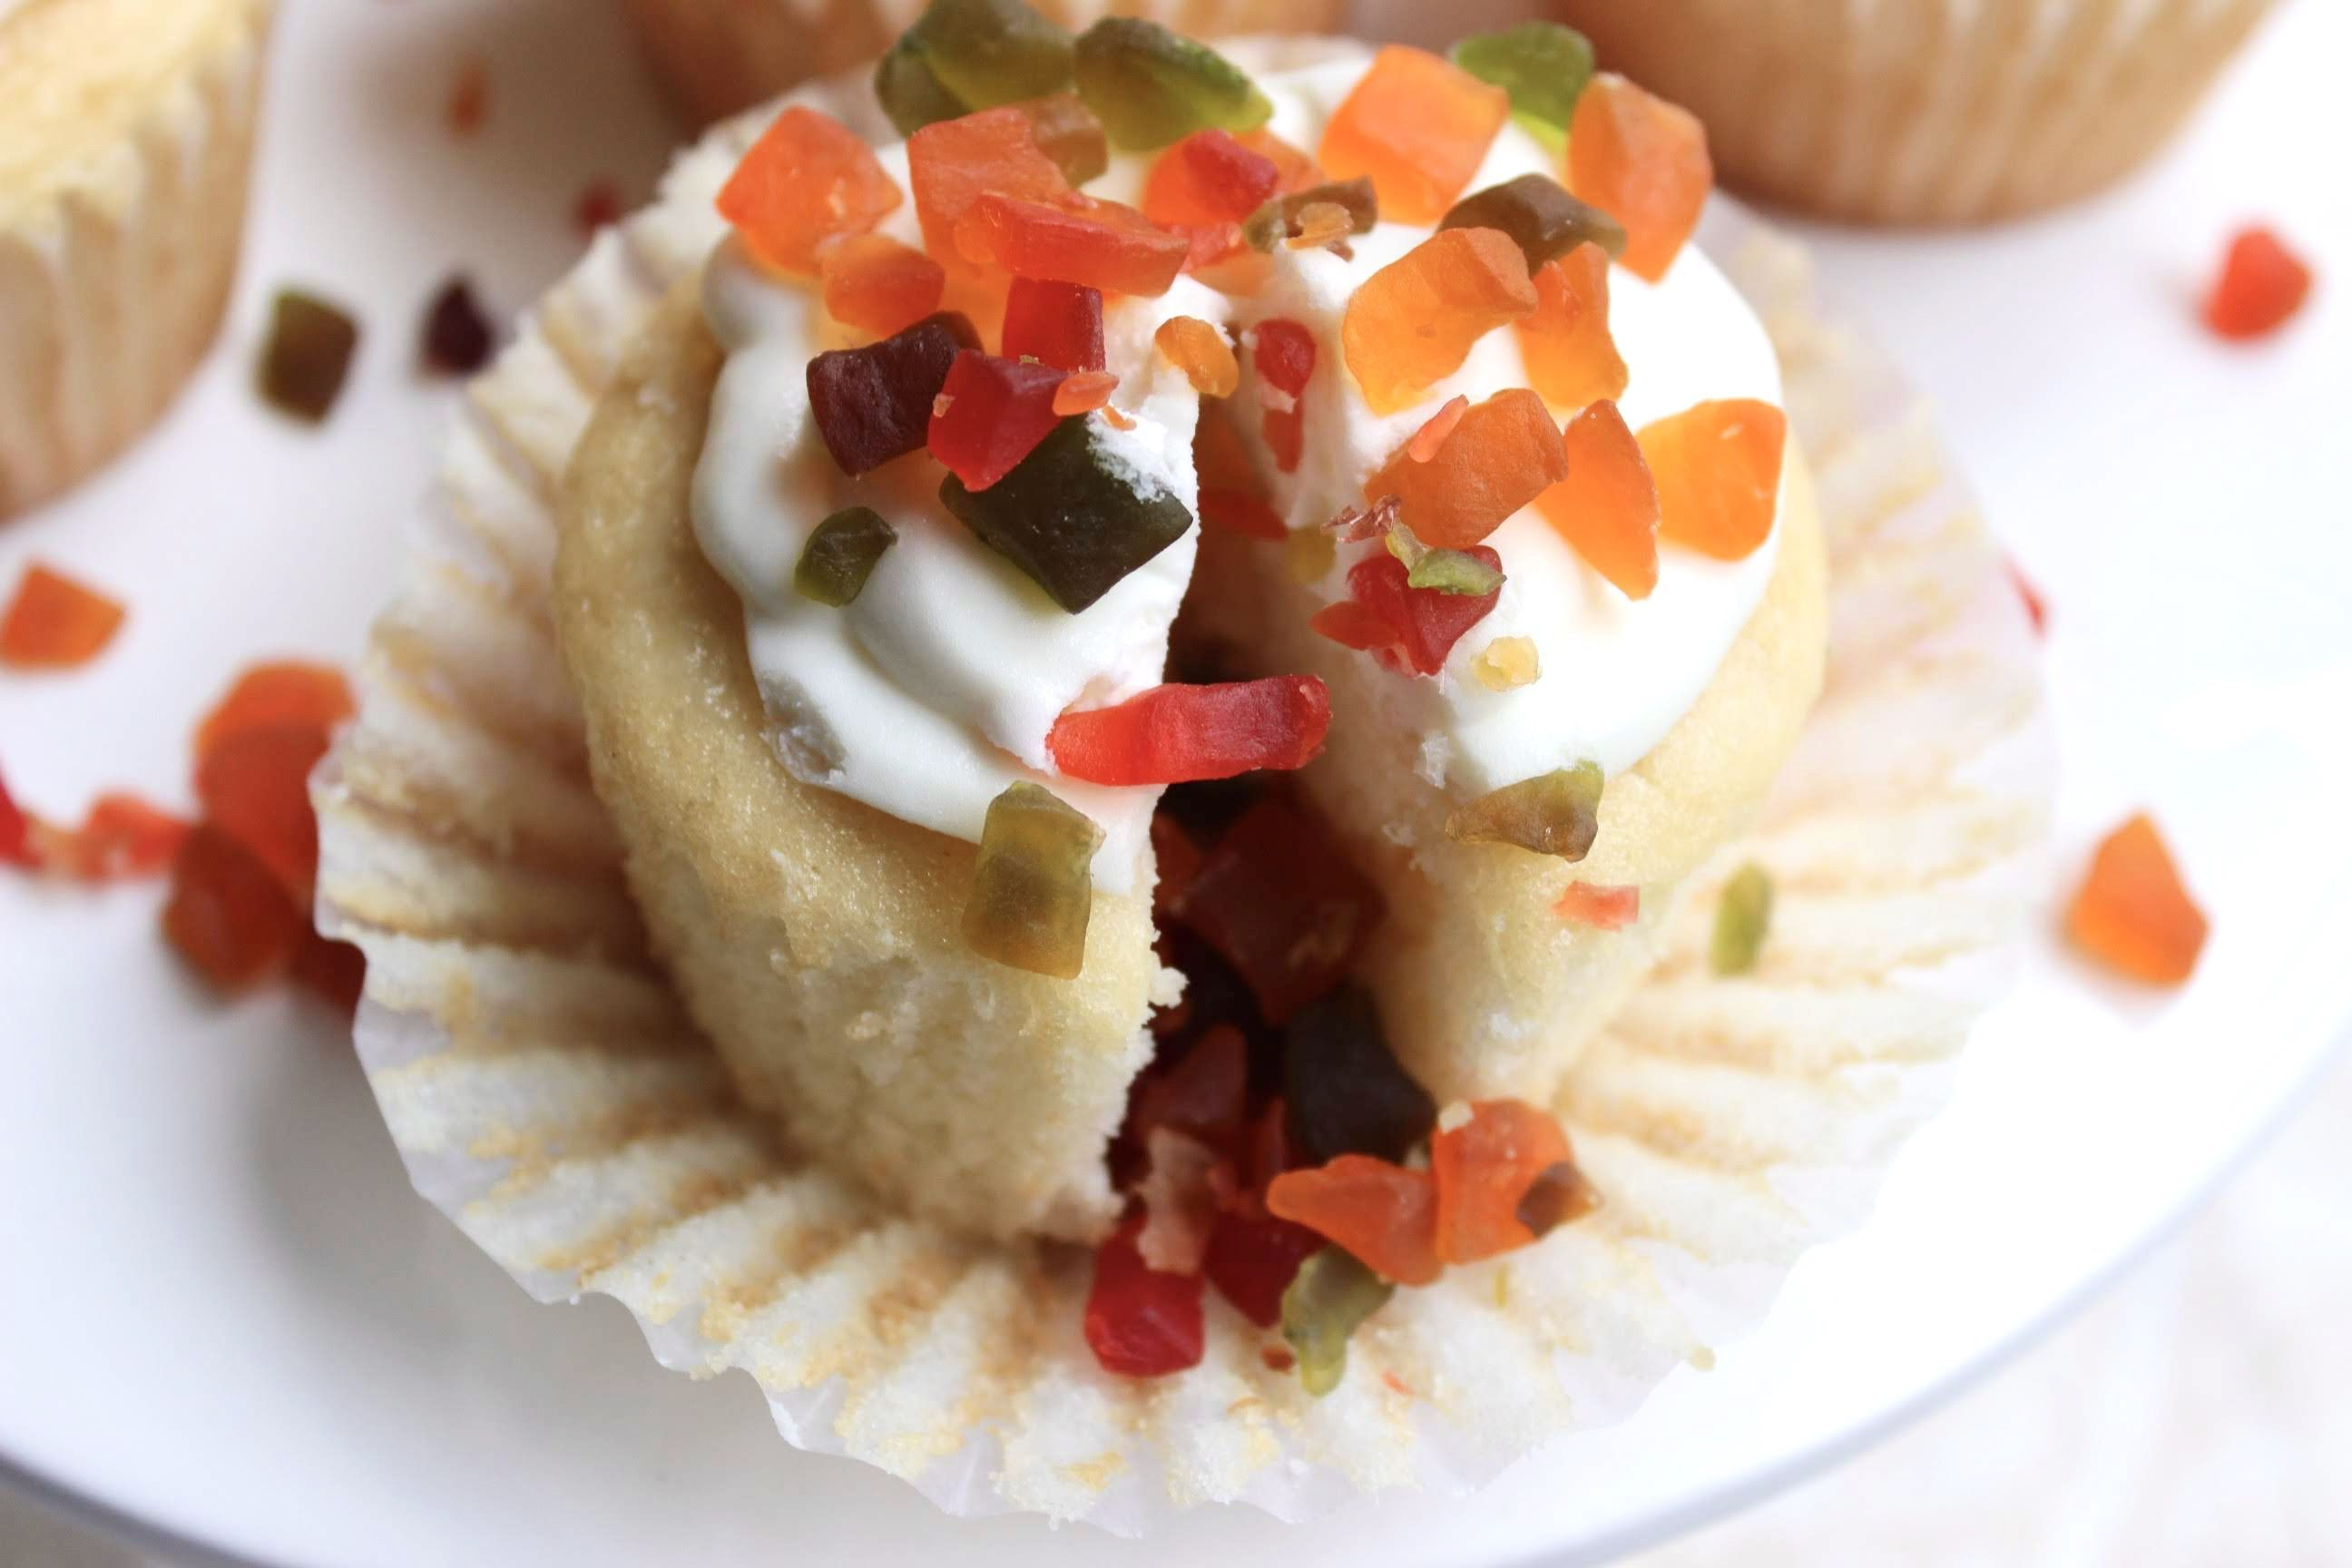 An ode to Childhood: Tutti Frutti Tres Leches Cupcakes #tresleches An ode to Childhood: Tutti Frutti Tres Leches Cupcakes